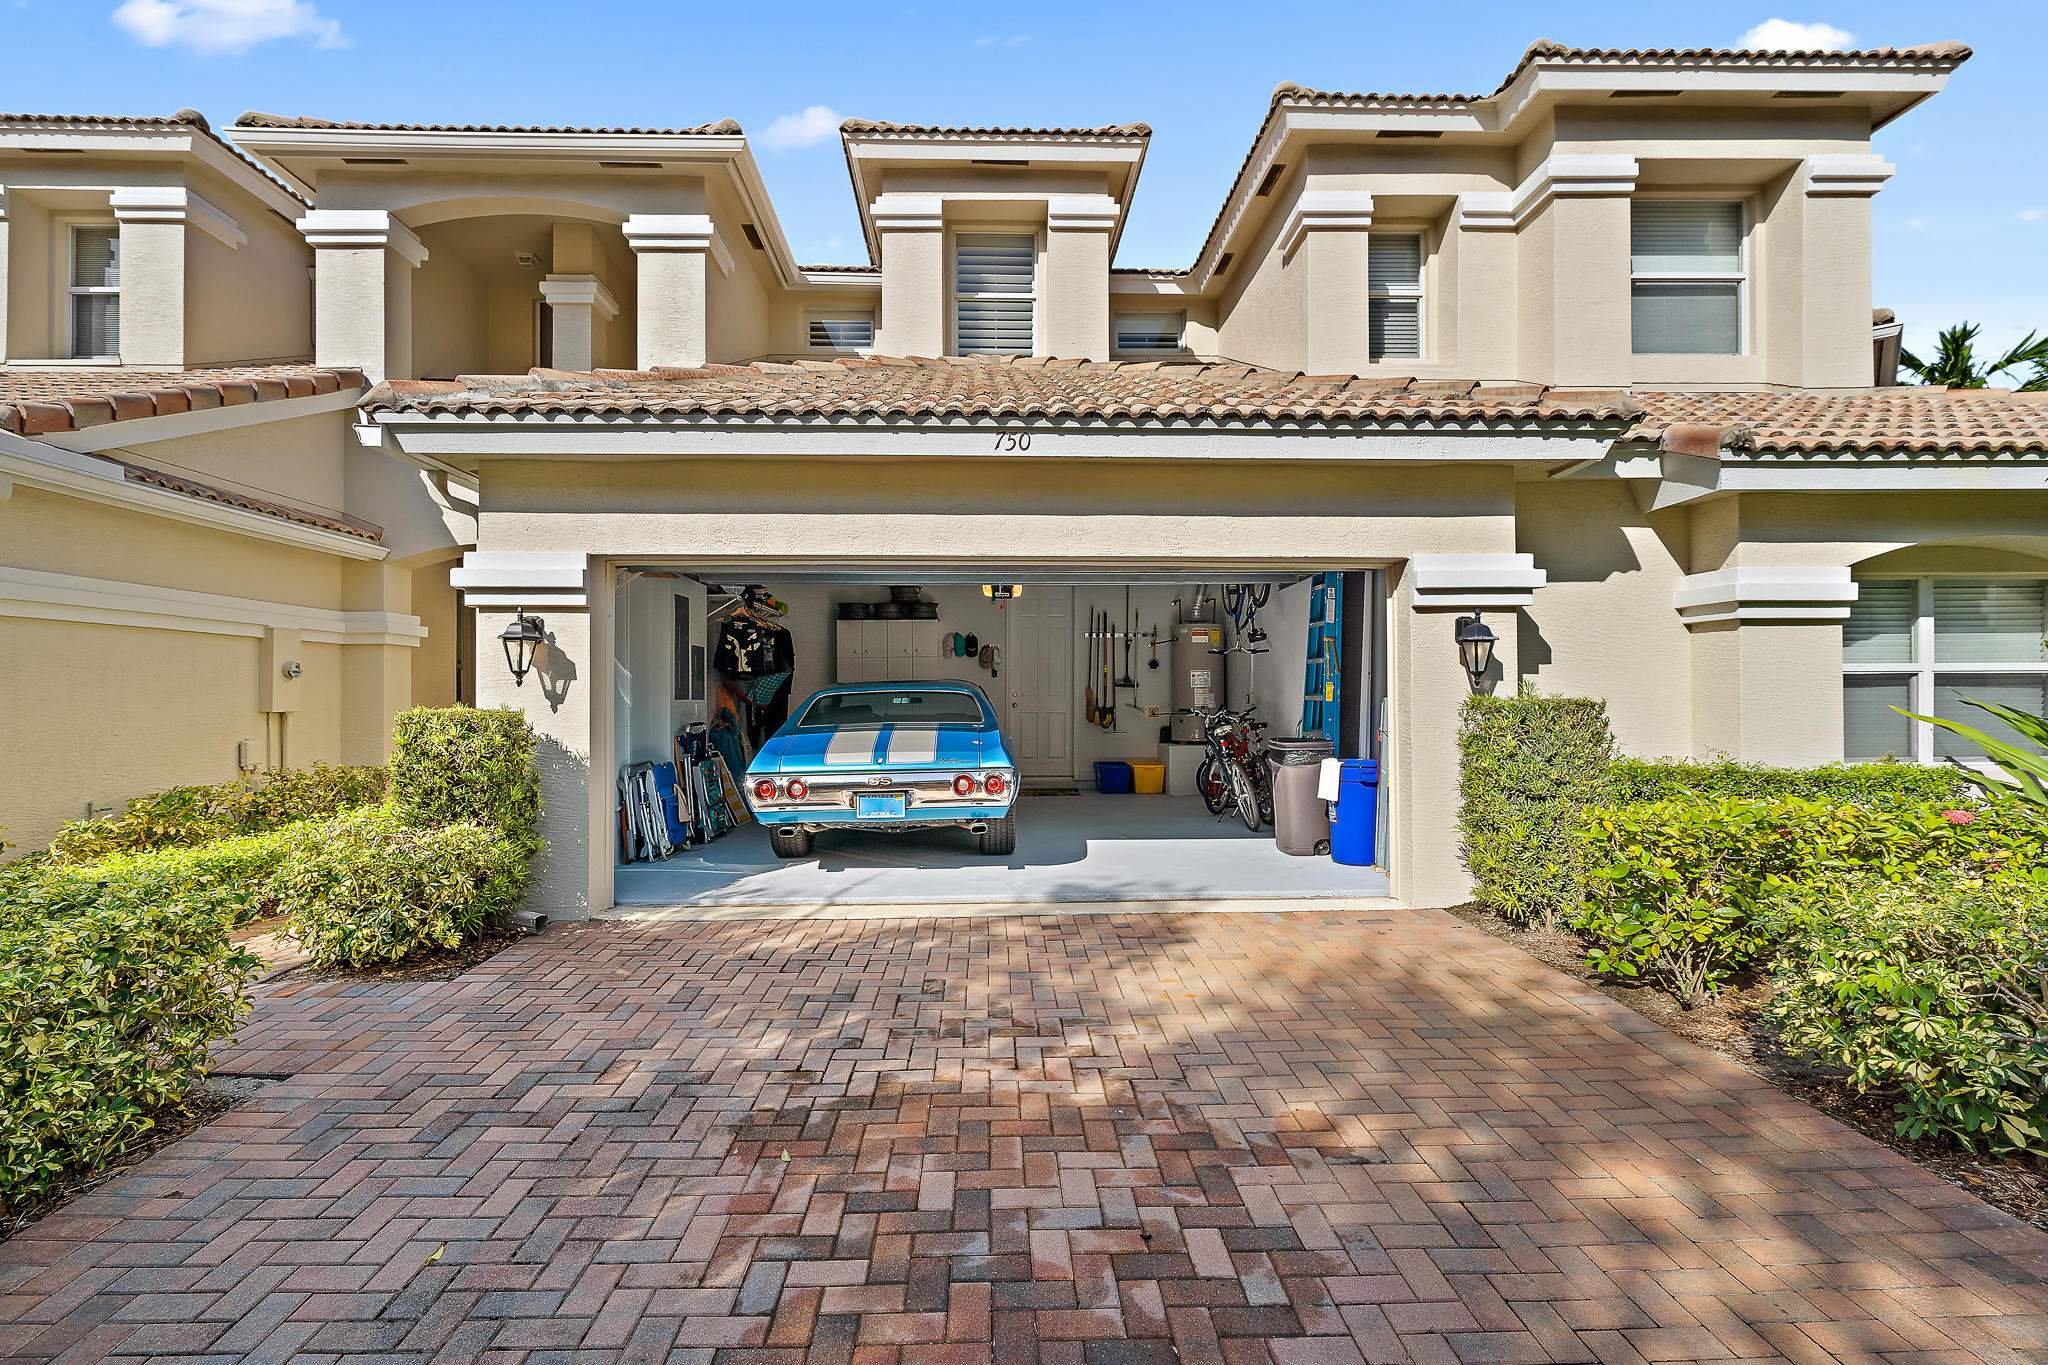 750 Cable Beach Lane, North Palm Beach, Florida 33410, 3 Bedrooms Bedrooms, ,2.1 BathroomsBathrooms,A,Townhouse,Cable Beach,RX-10475784